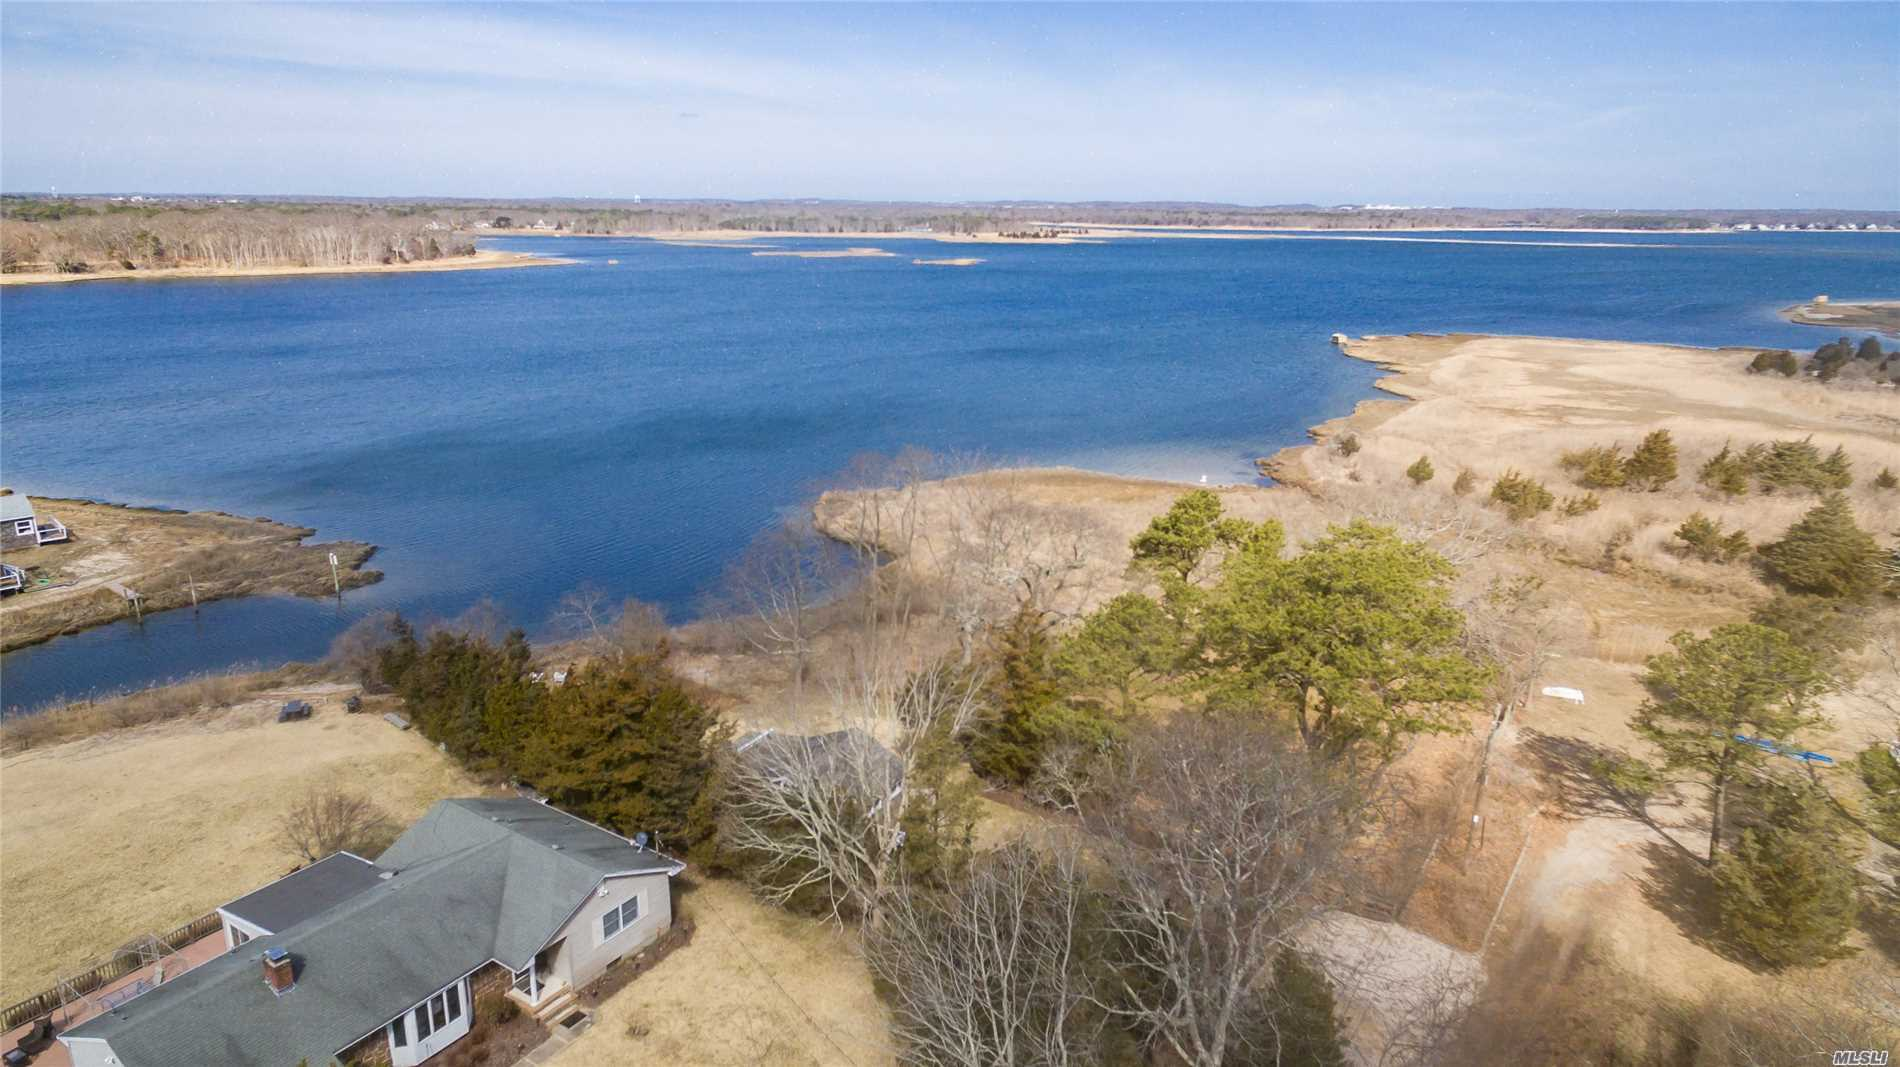 Waterfront Jewe This Waterfront Jewel Has Commanding Panoramic Views, Deeded Dock Rights, Two Kayaks. The Tiered Blue Stone Deck Is 330 Square Feet With Wrought Iron And Ceramic Planters (Incl) As Well As A Second 144 Sq Foot Brick Patio For Sunset Viewing.